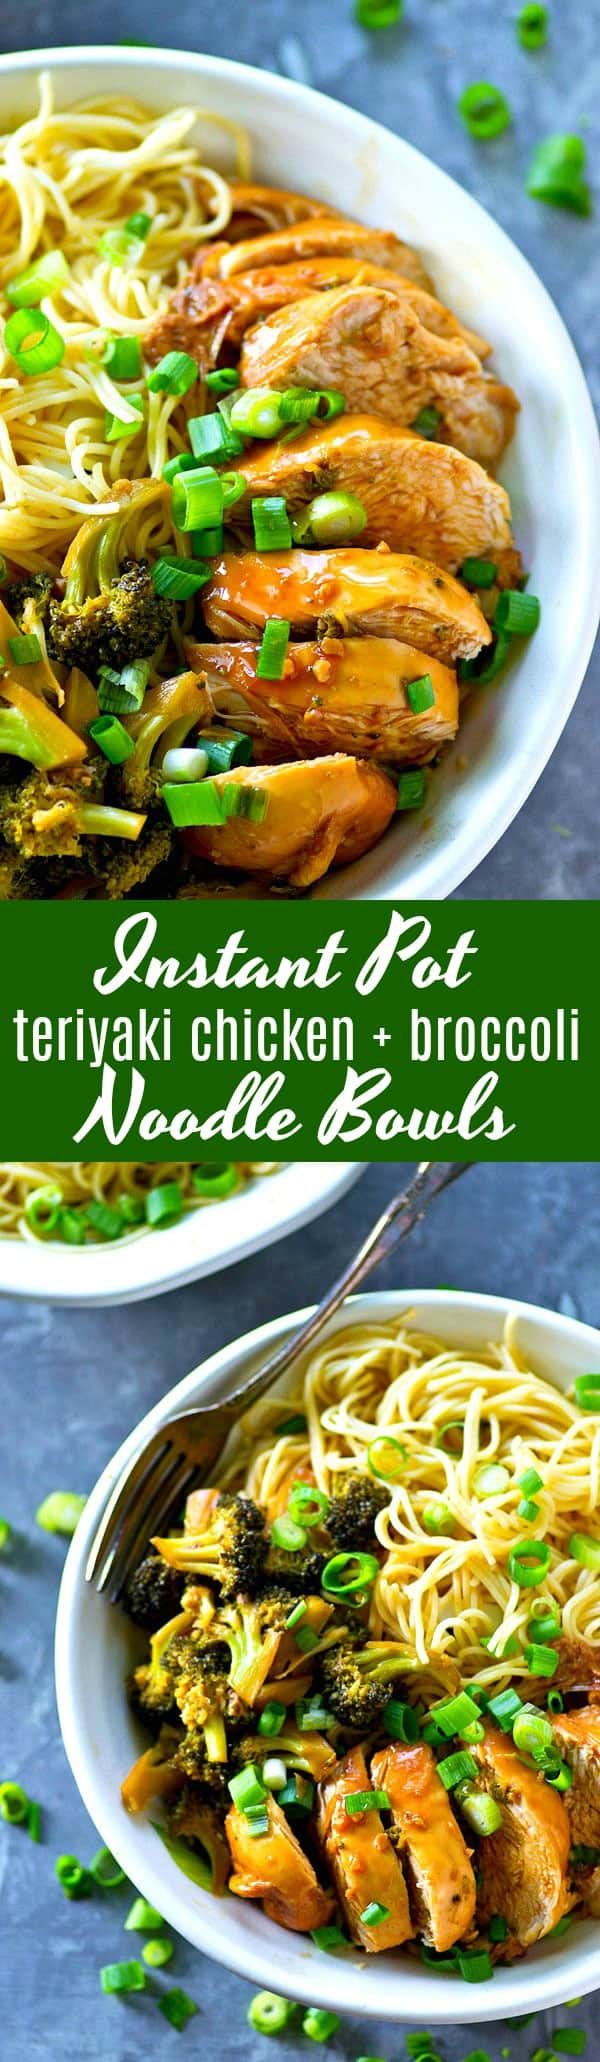 These instant pot teriyaki chicken noodle bowls were MADE for crazy dinner nights! Homemade teriyaki sauce is the secret behind what makes the chicken and broccoli so incredibly flavorful.